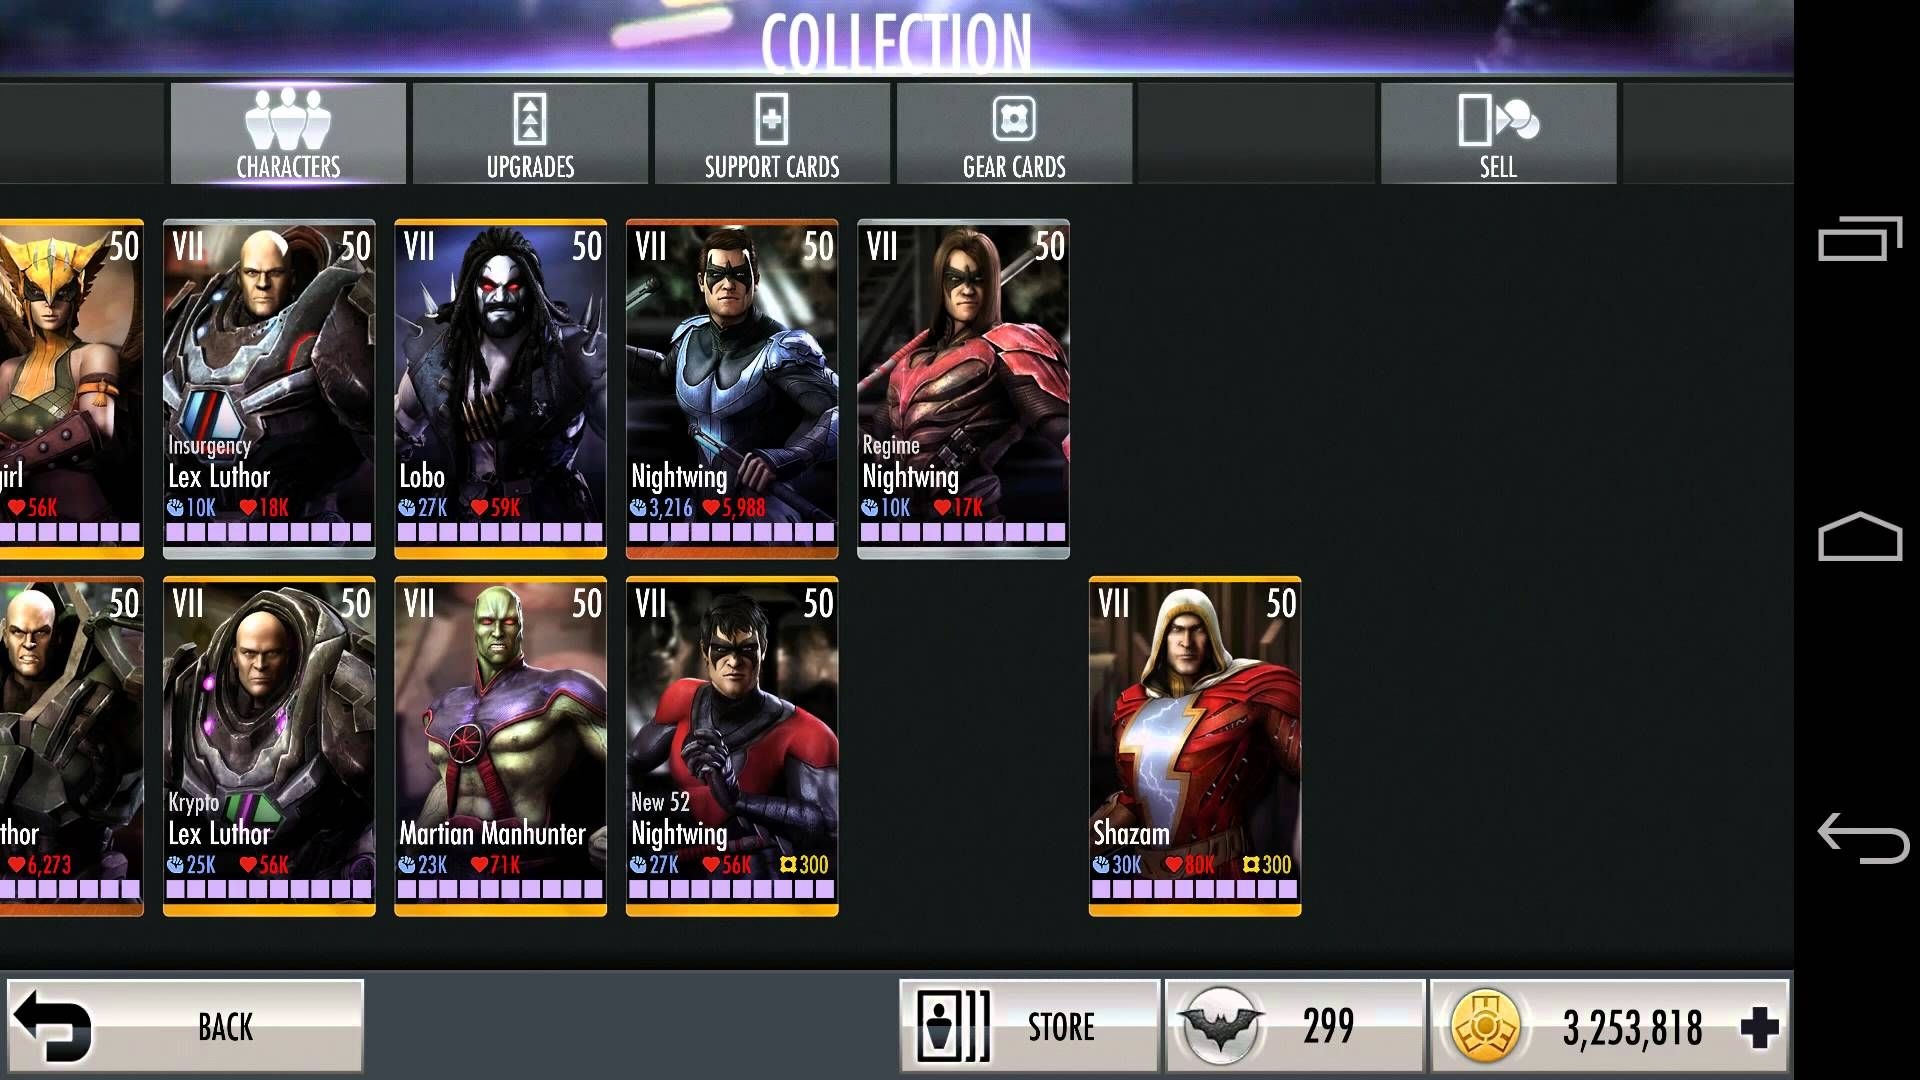 Apk Download Injustice Gods Among Us Hack Get 9999999 Power Energy Unlock All Characters And Unlock All Special Costumes Android Hacks Ios Games App Hack